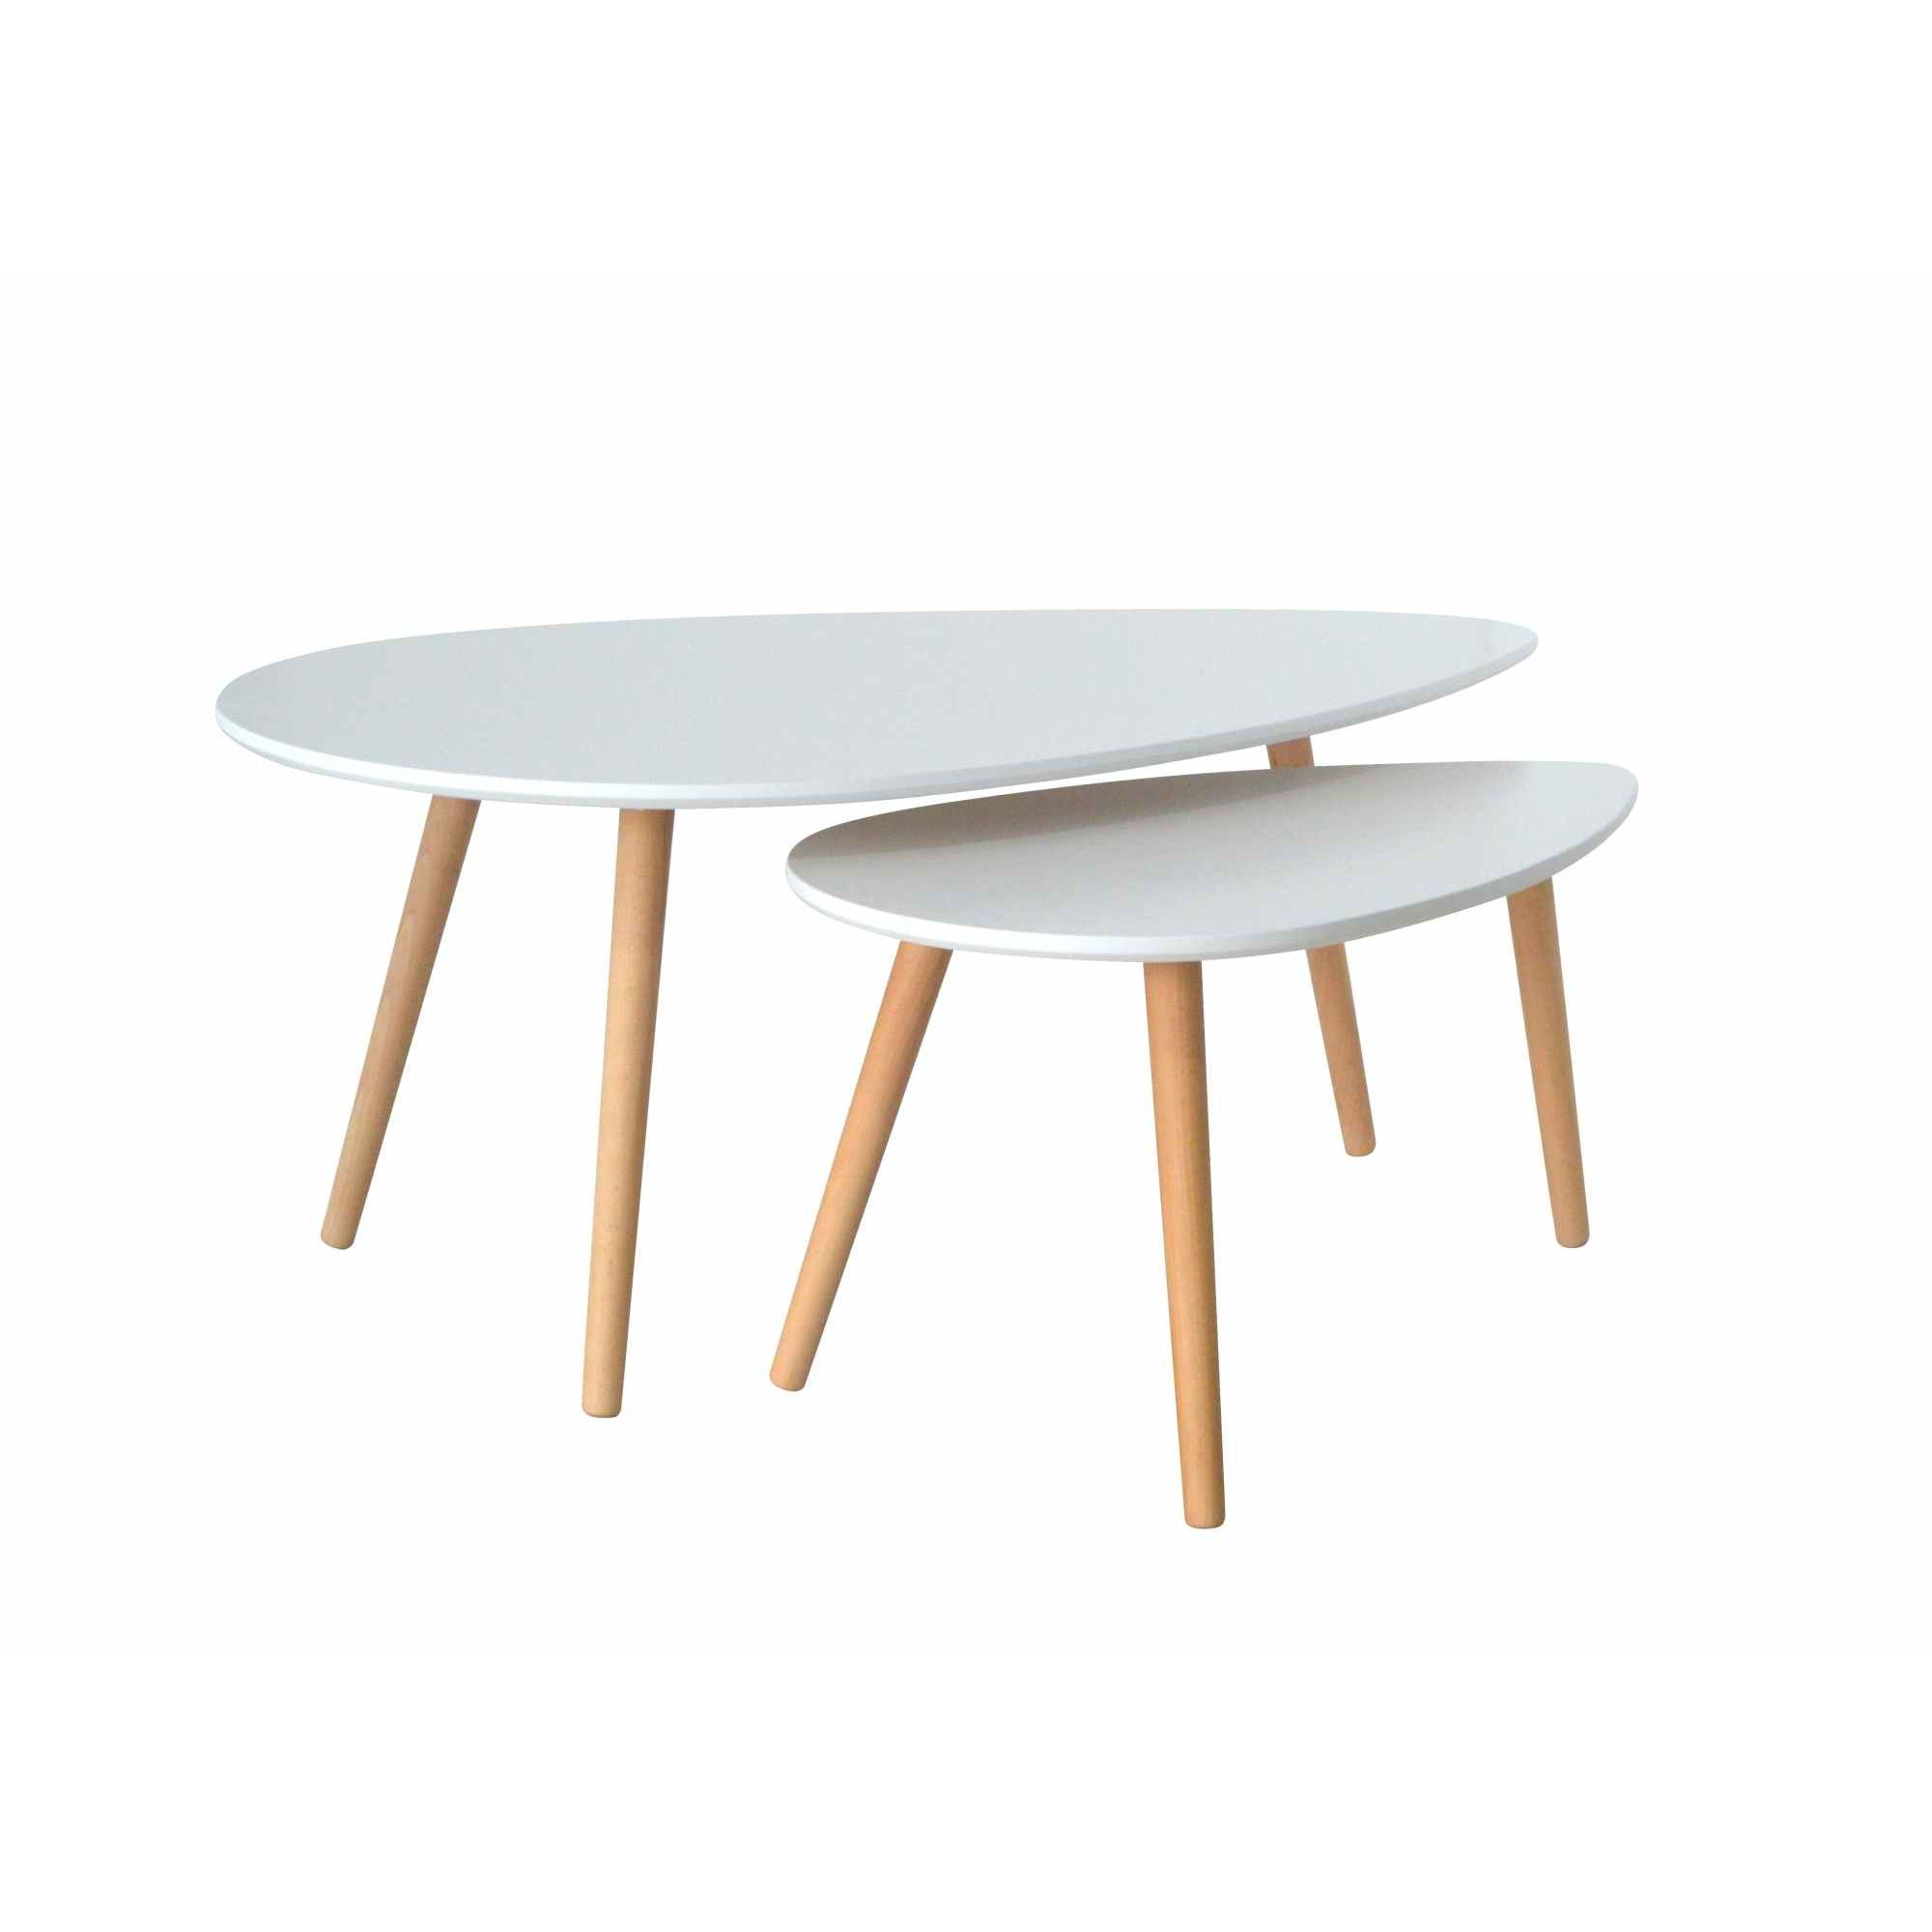 Emejing Table Basse Blanche Scandinave Contemporary